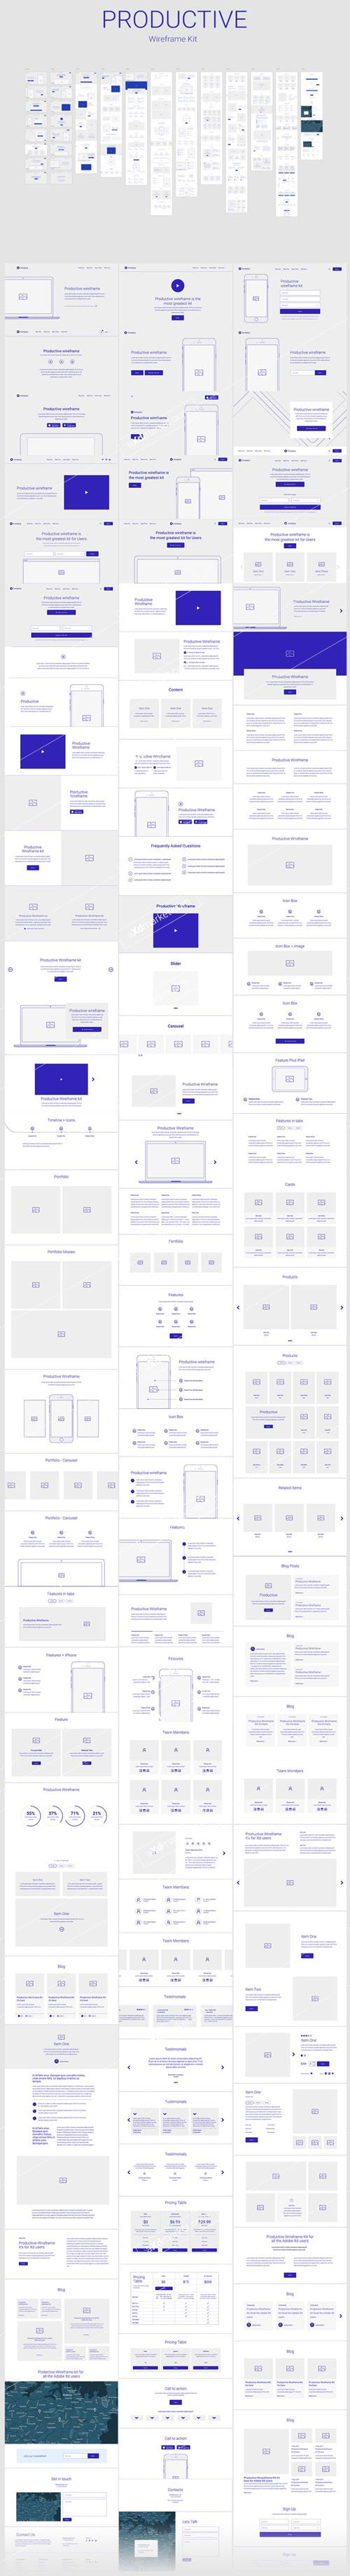 Productive Wireframe